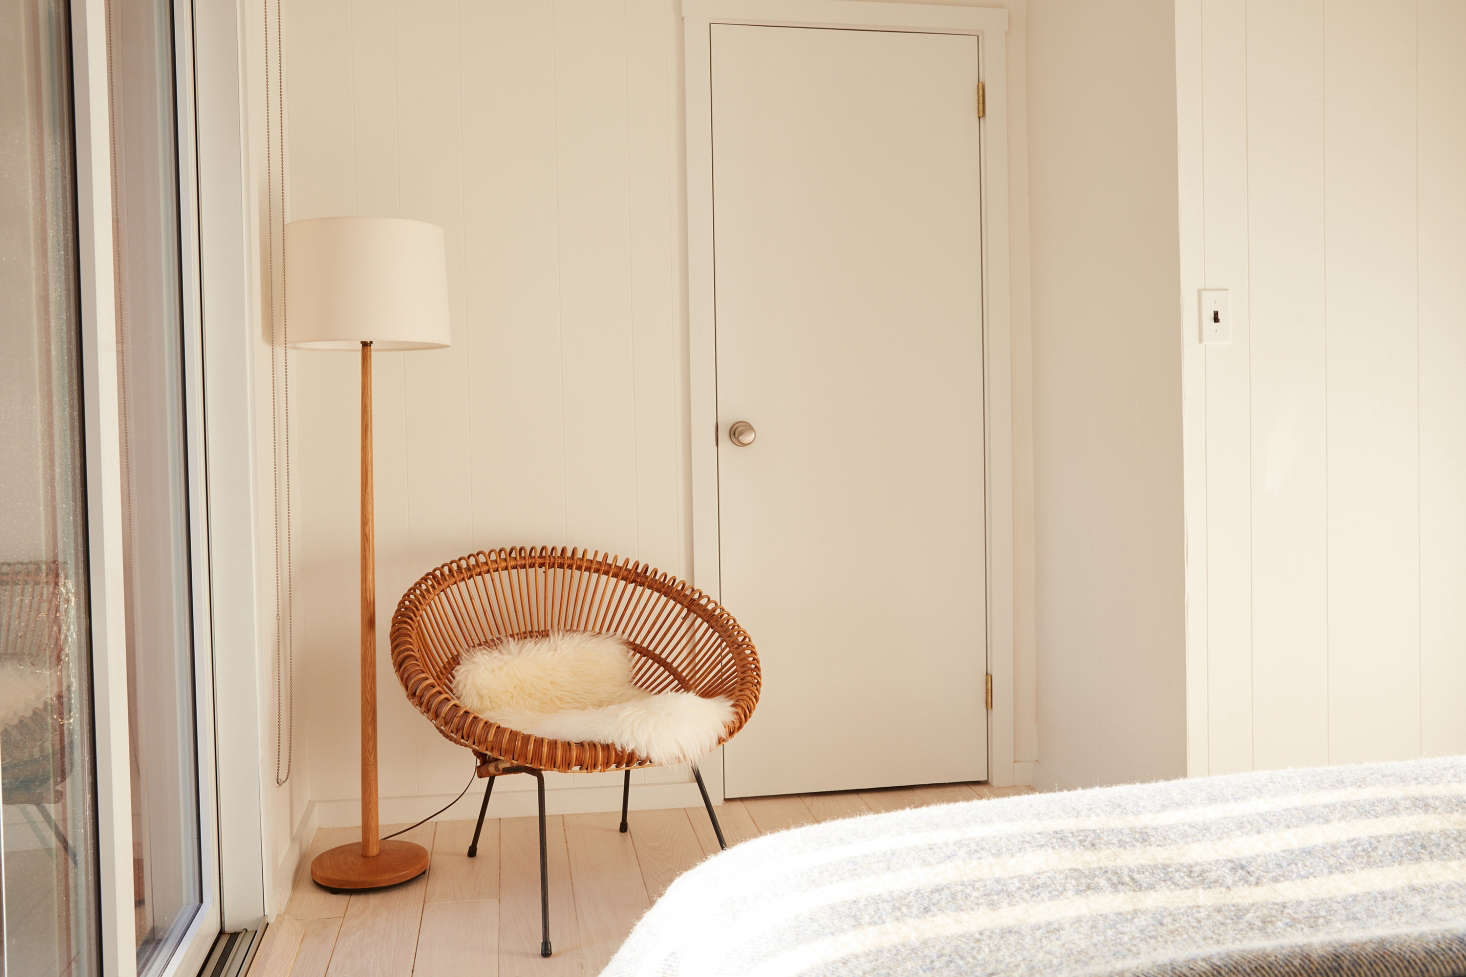 At the foot of the bed: a rattan Franco Albini chair, a Danish standing lamp from Etsy, and the door to an en suite bedroom.